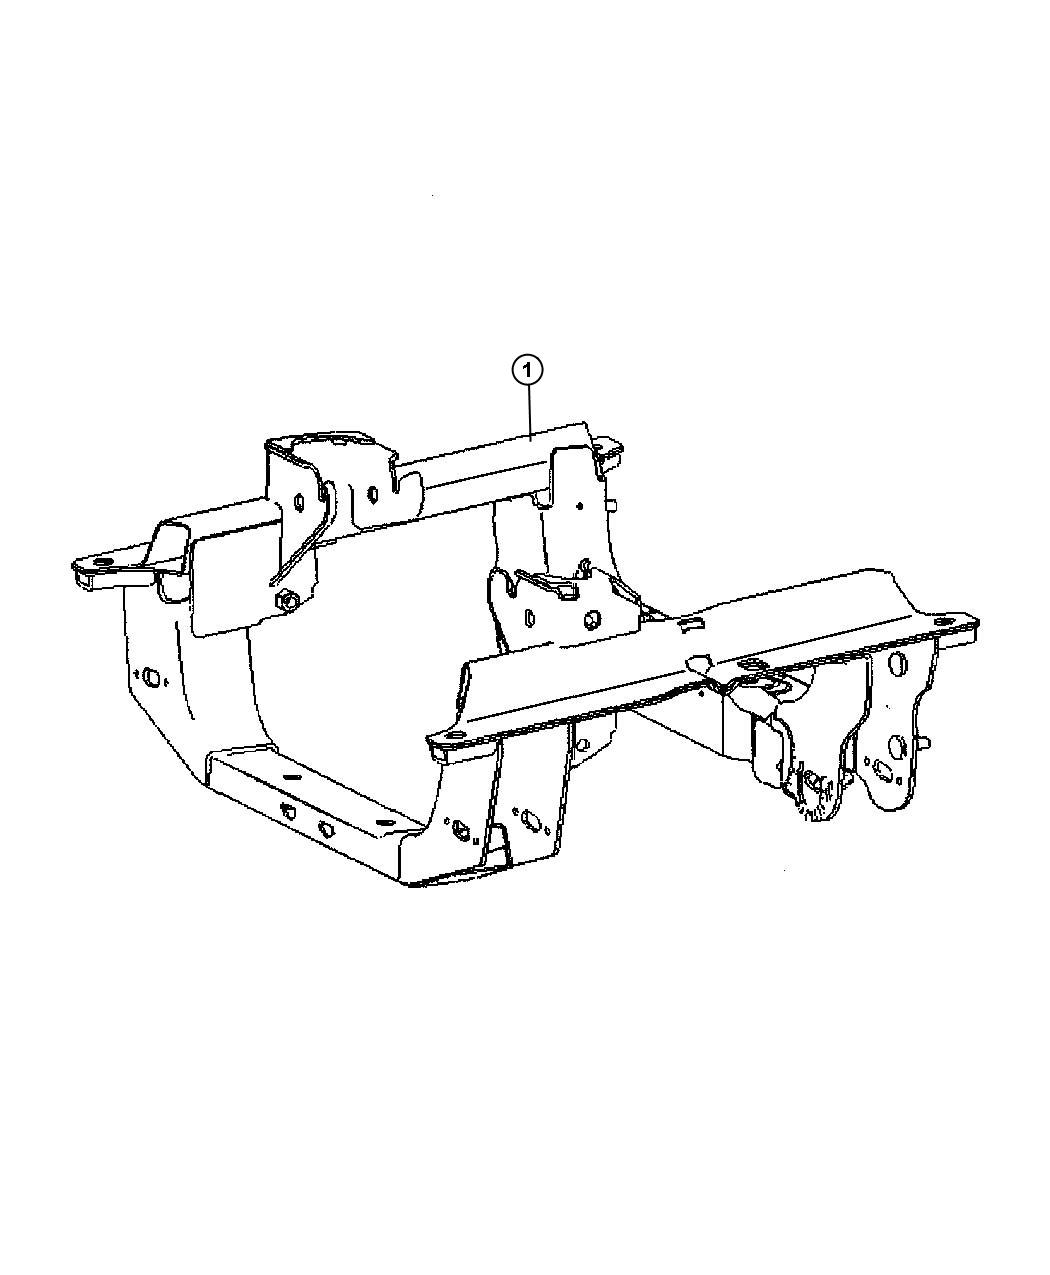 Jeep Liberty Cradle Front Suspension Engines